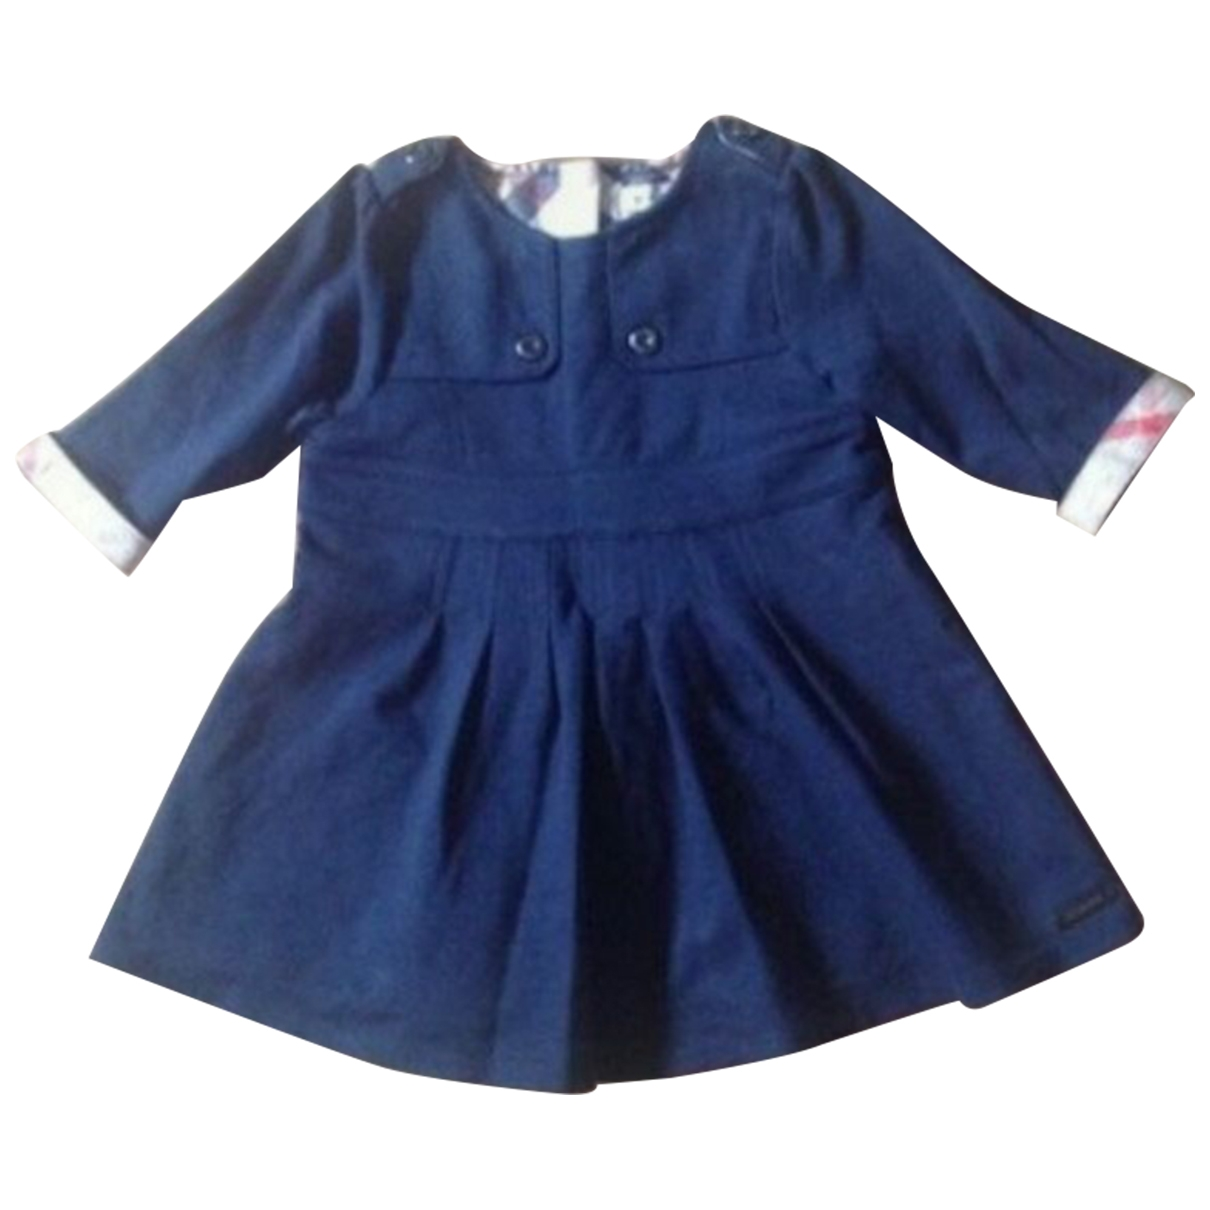 Burberry \N Navy Cotton dress for Kids 6 months - up to 67cm FR